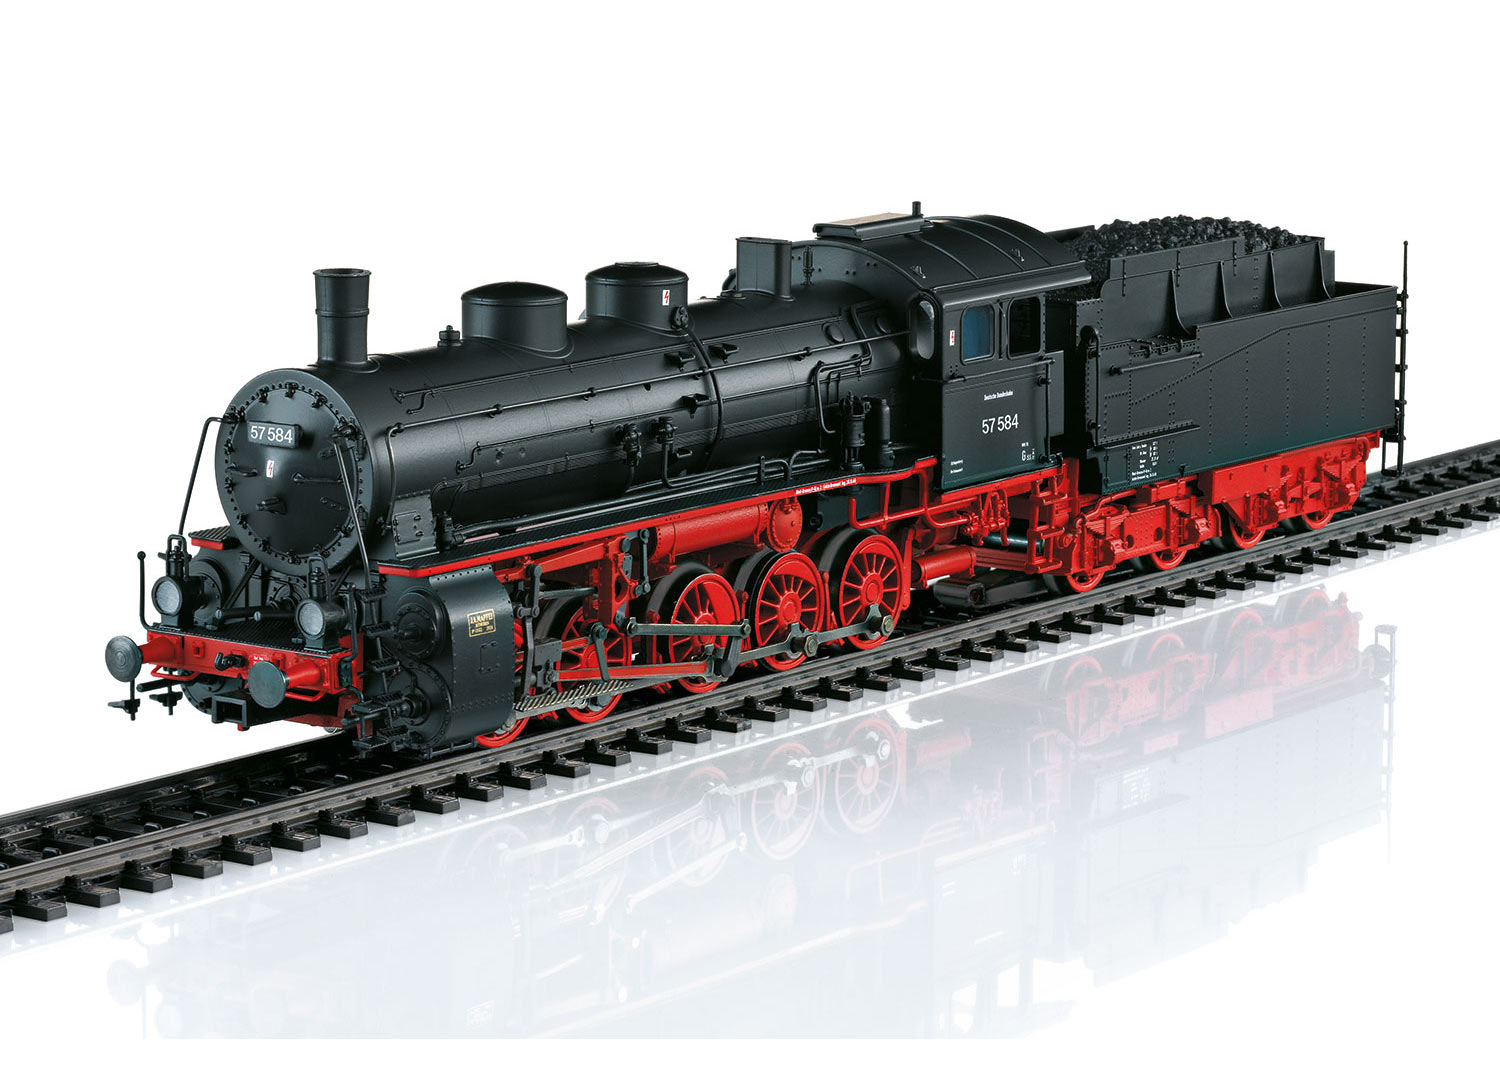 Freight Steam Locomotive with a Tender